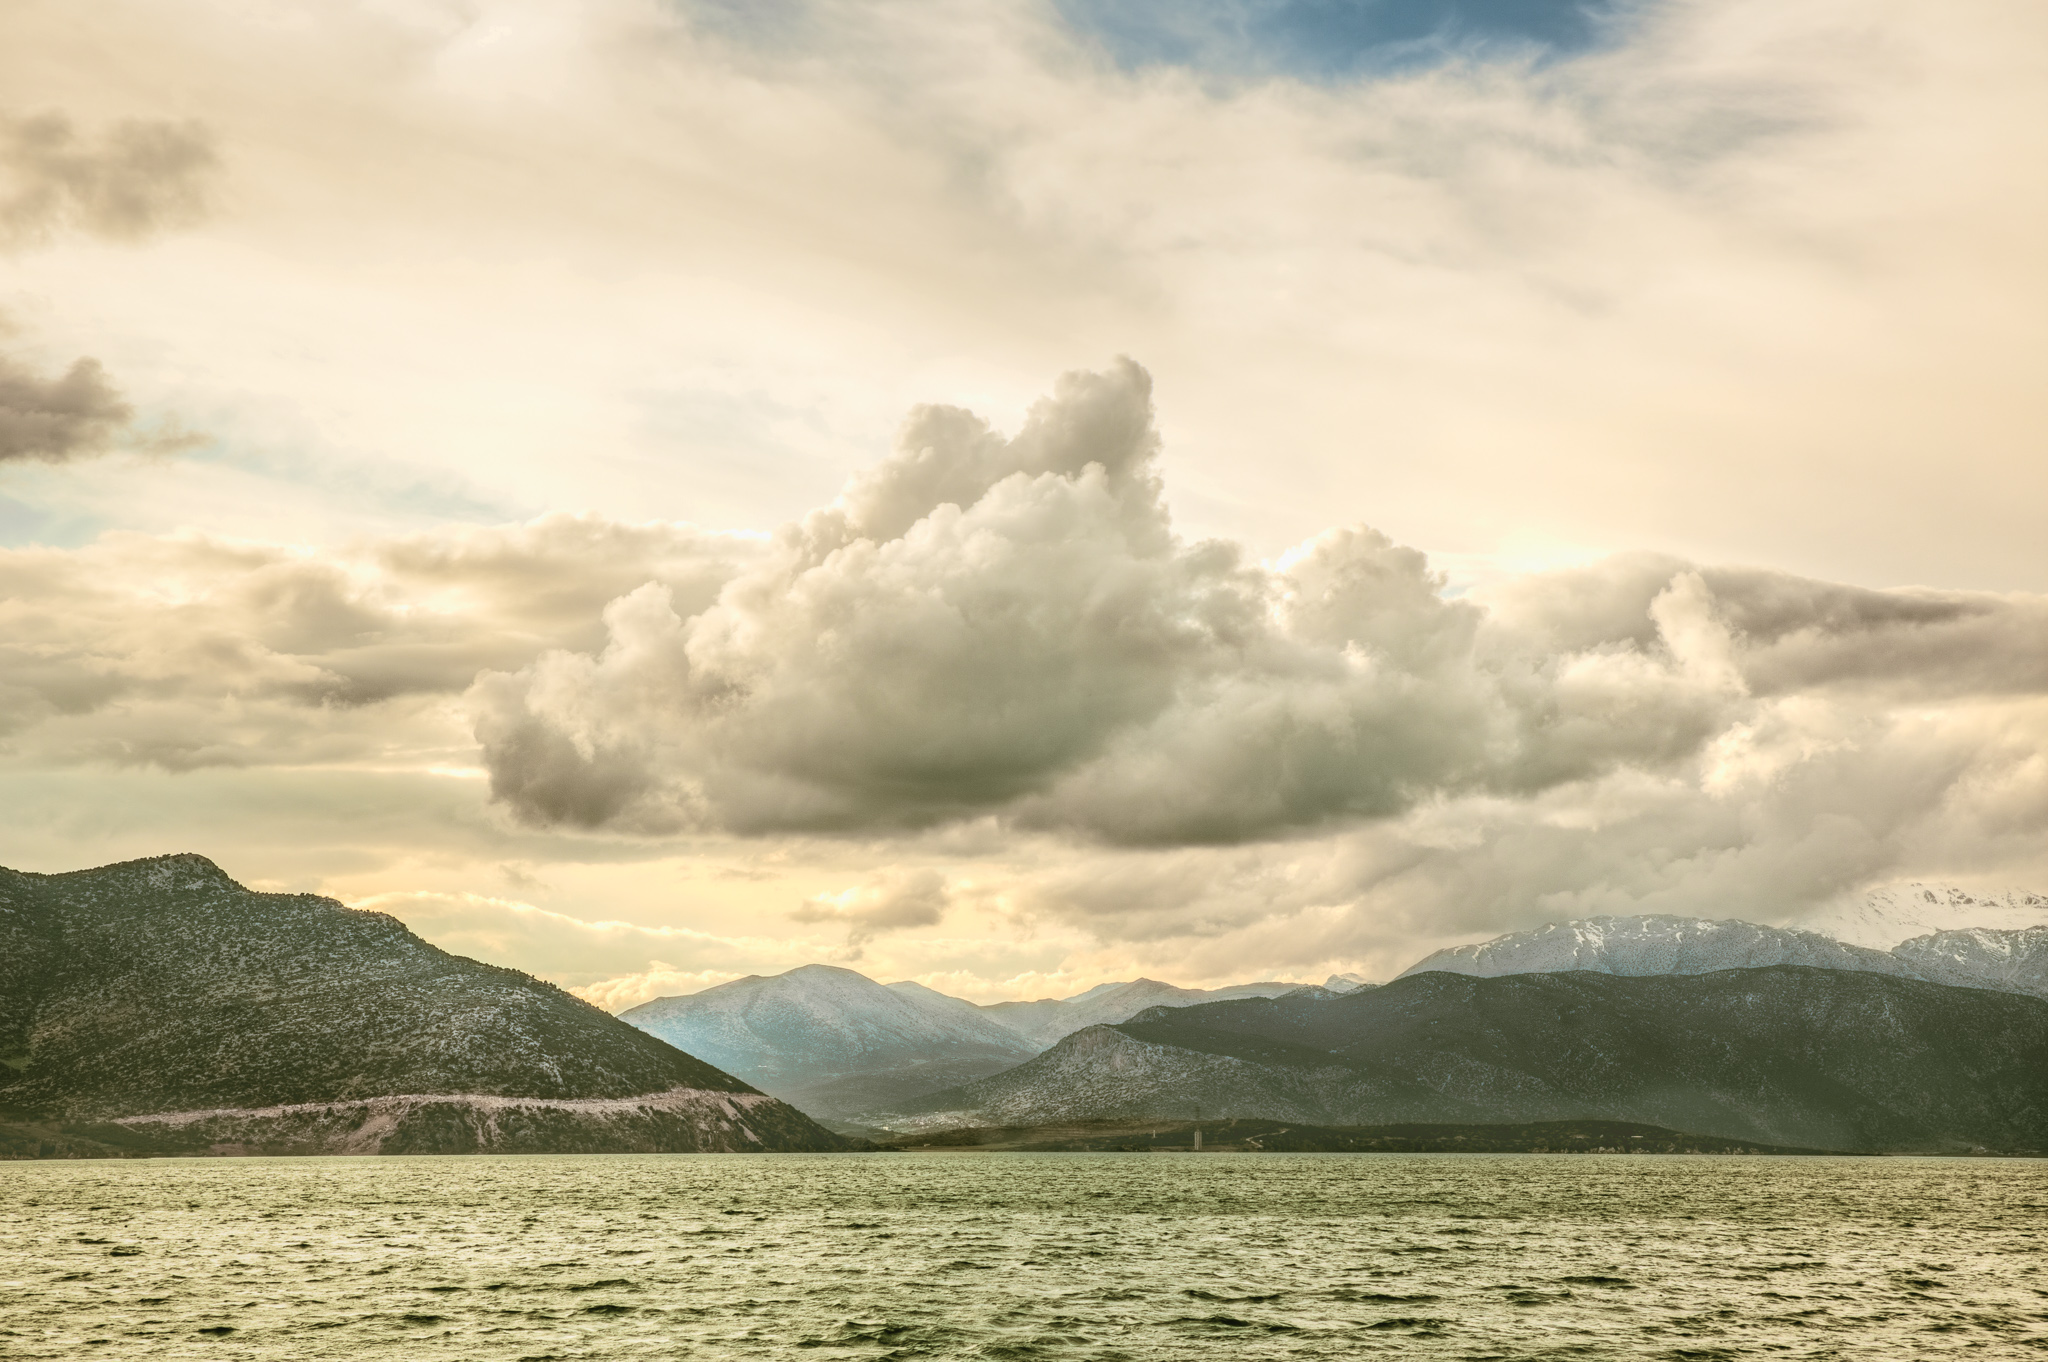 egirdir_causeway-to-yesil-ada-green-island-3820-Edit_big-cloud-over-dark-coastline-in-sunset.jpg